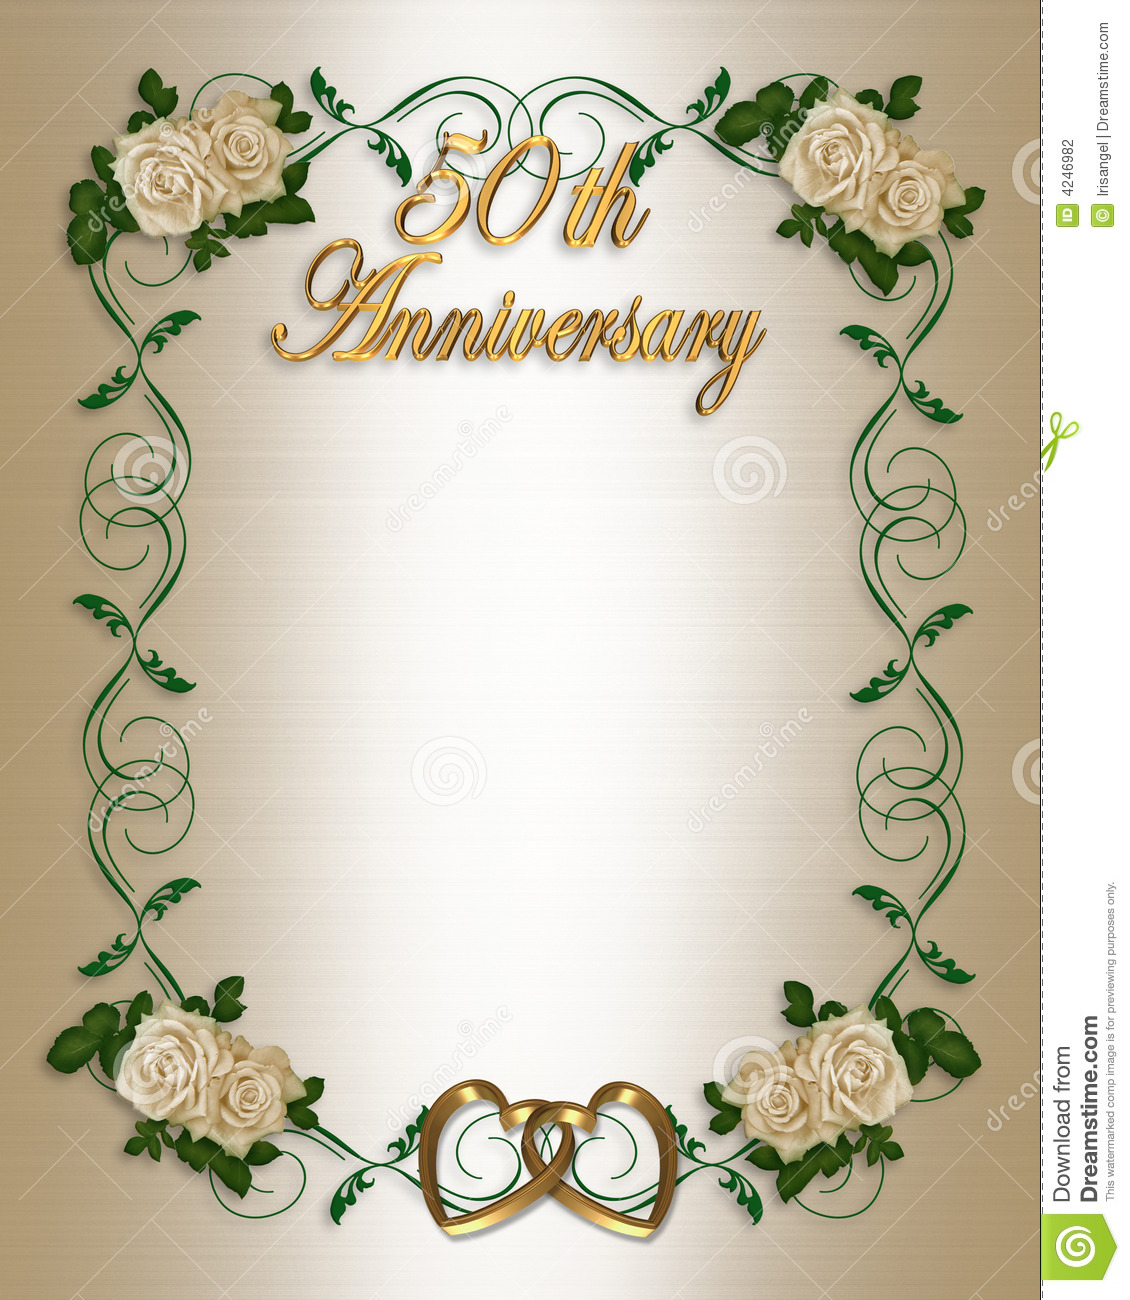 50th wedding anniversary invitation stock illustration 50th wedding anniversary invitation stopboris Gallery